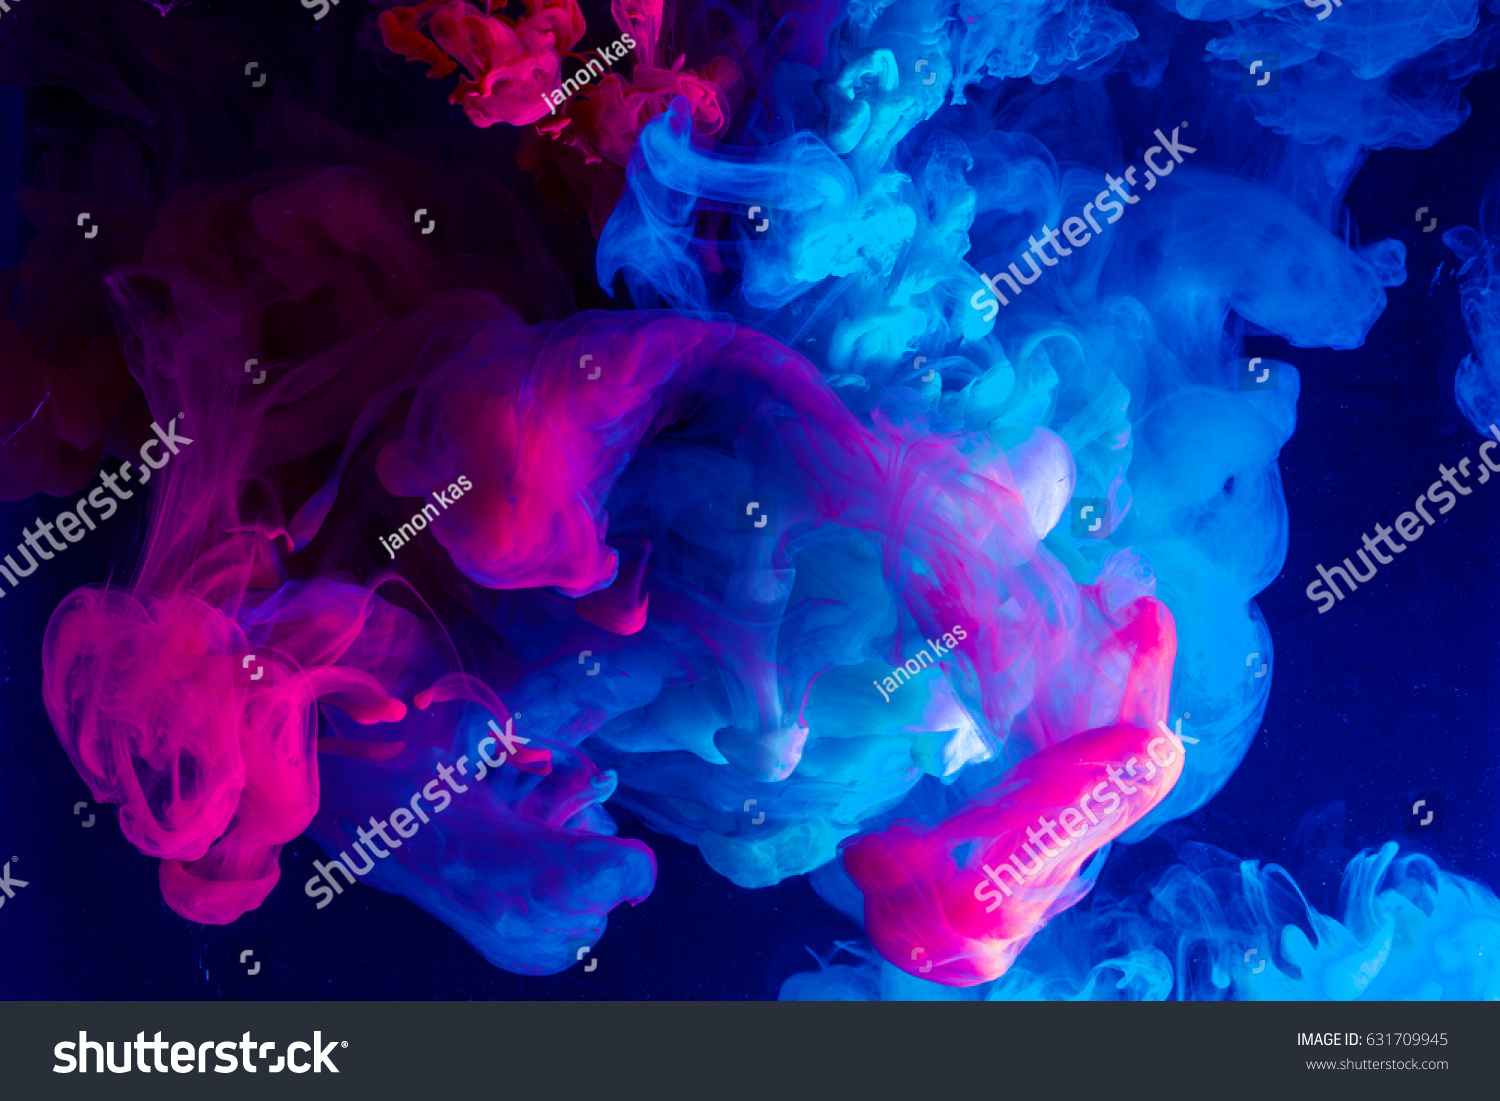 Motion Color drop in water,Ink swirling in ,Colorful ink abstraction.Fancy Dream Cloud of ink under water #631709945 - 123PhotoFree.com